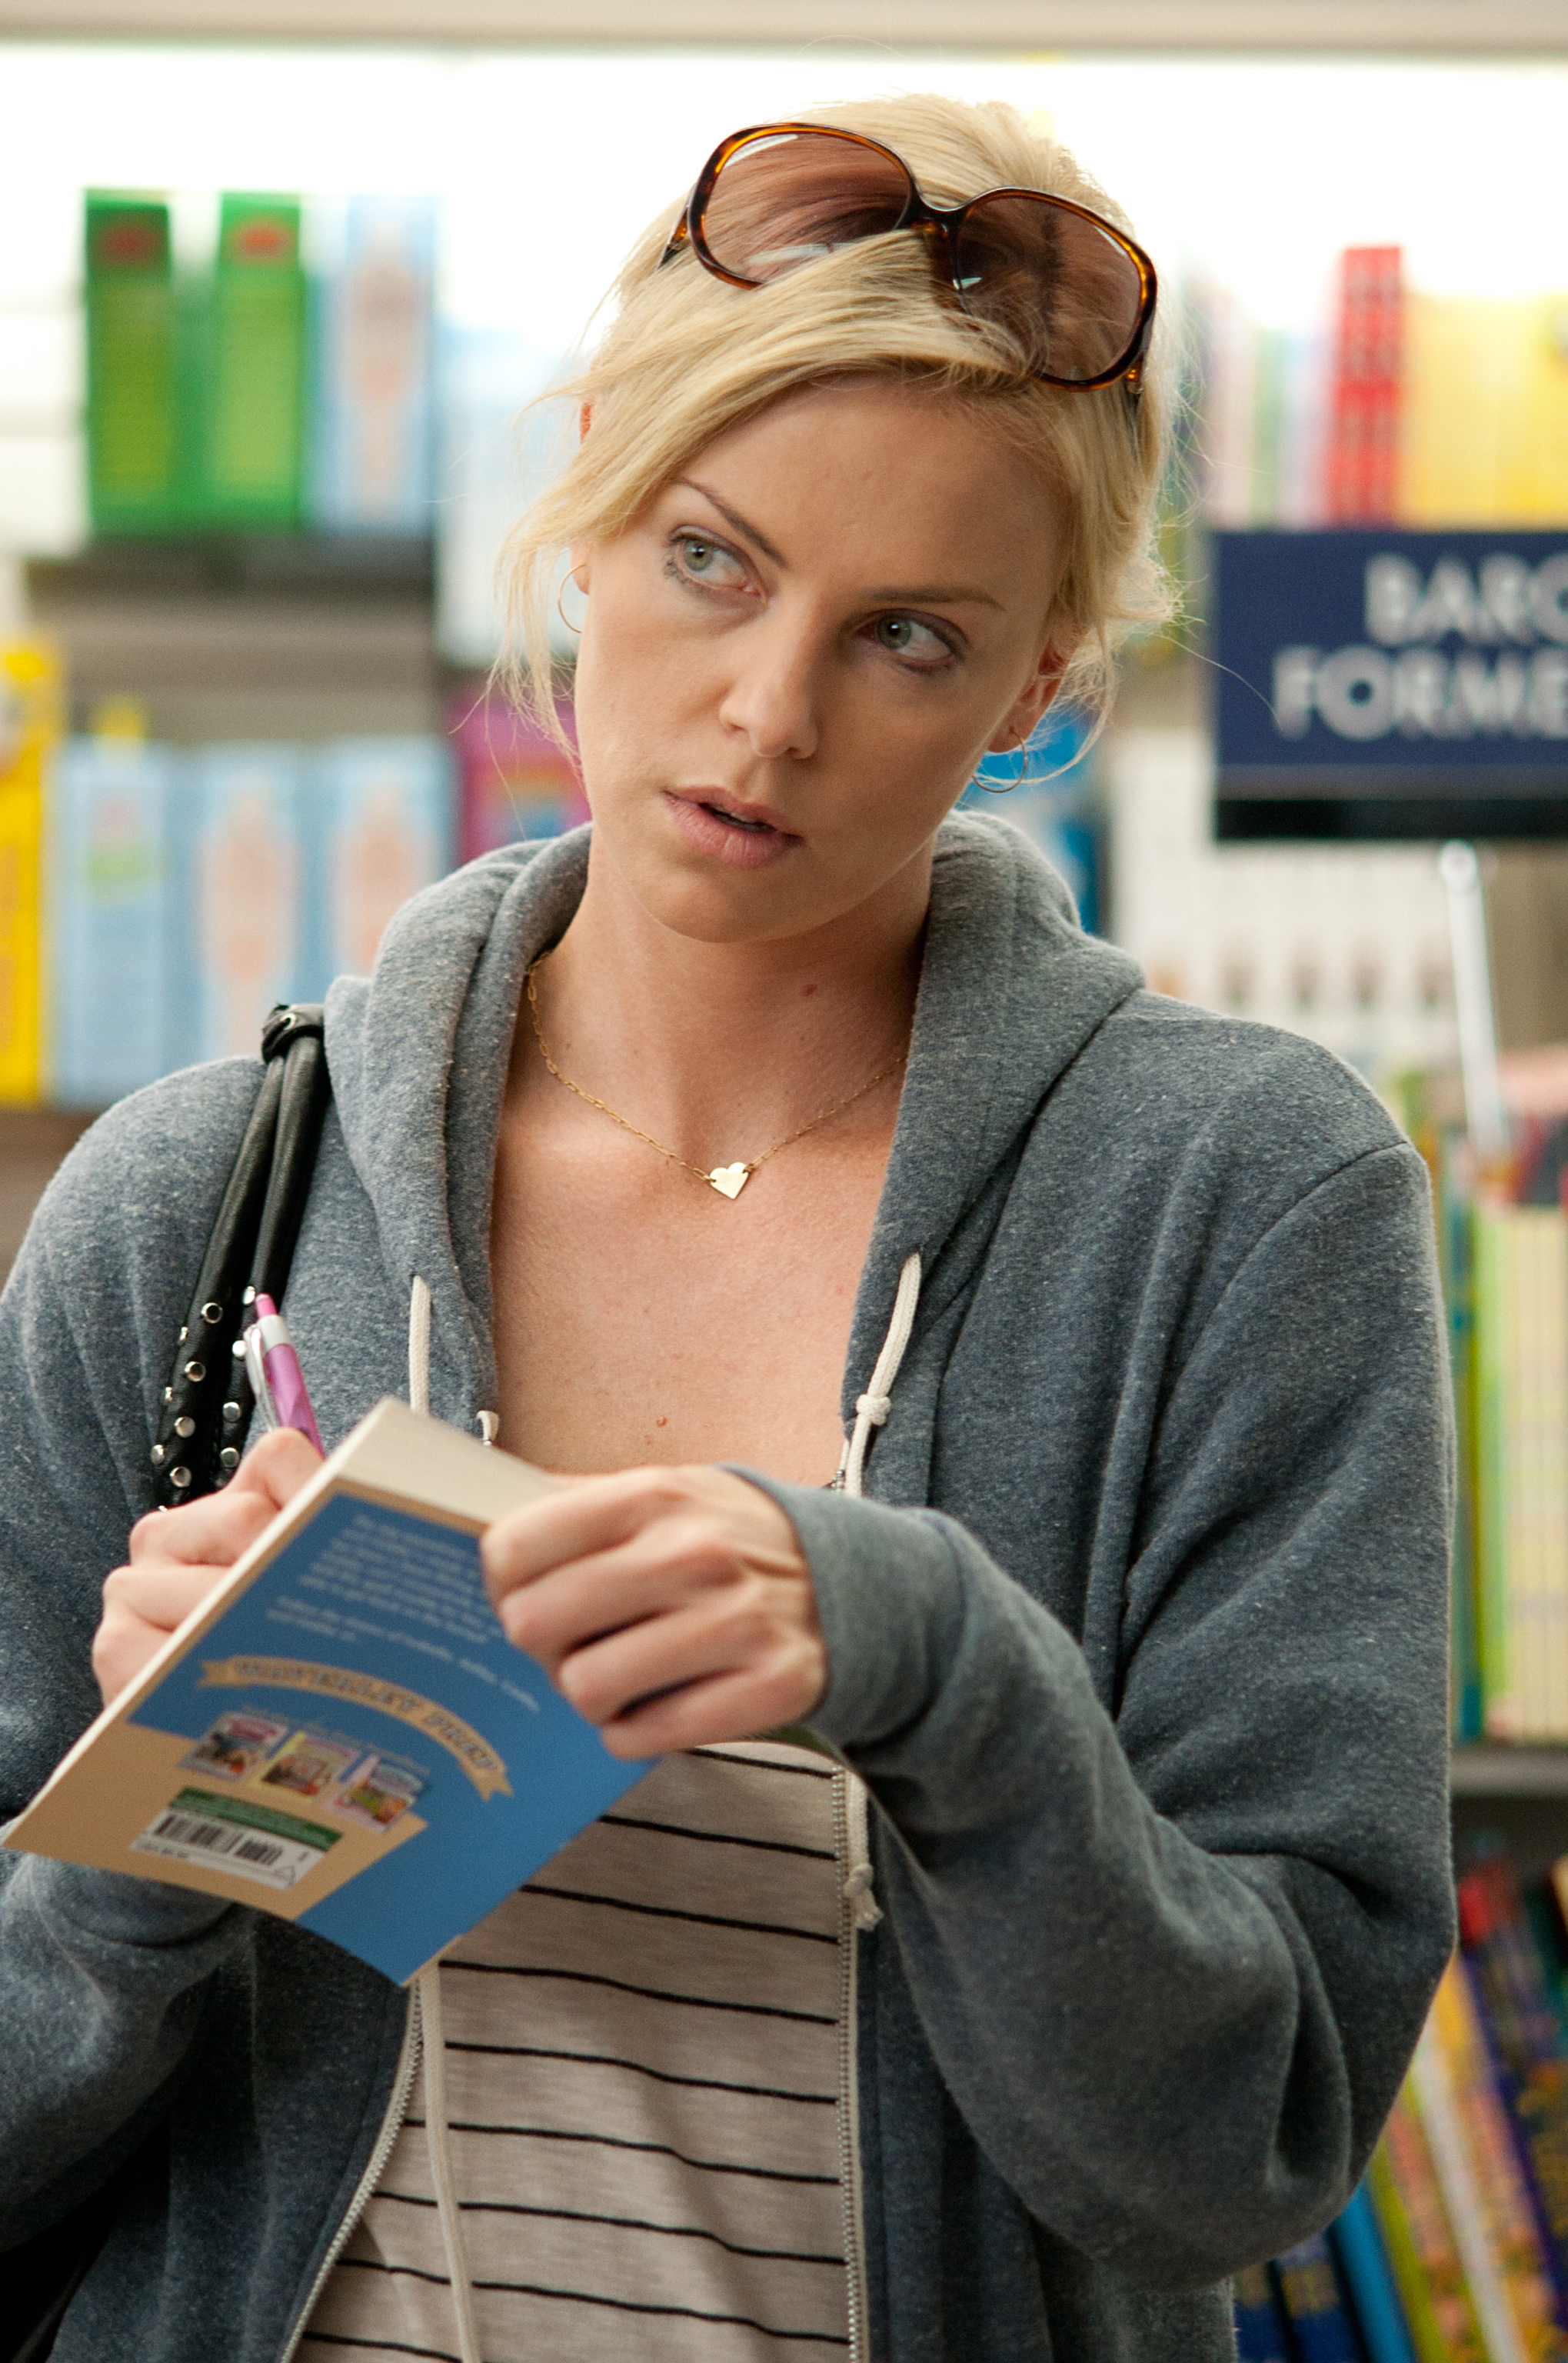 charlize-theron-young-adult-movie-image-5 You've been in Hollywood for a ...